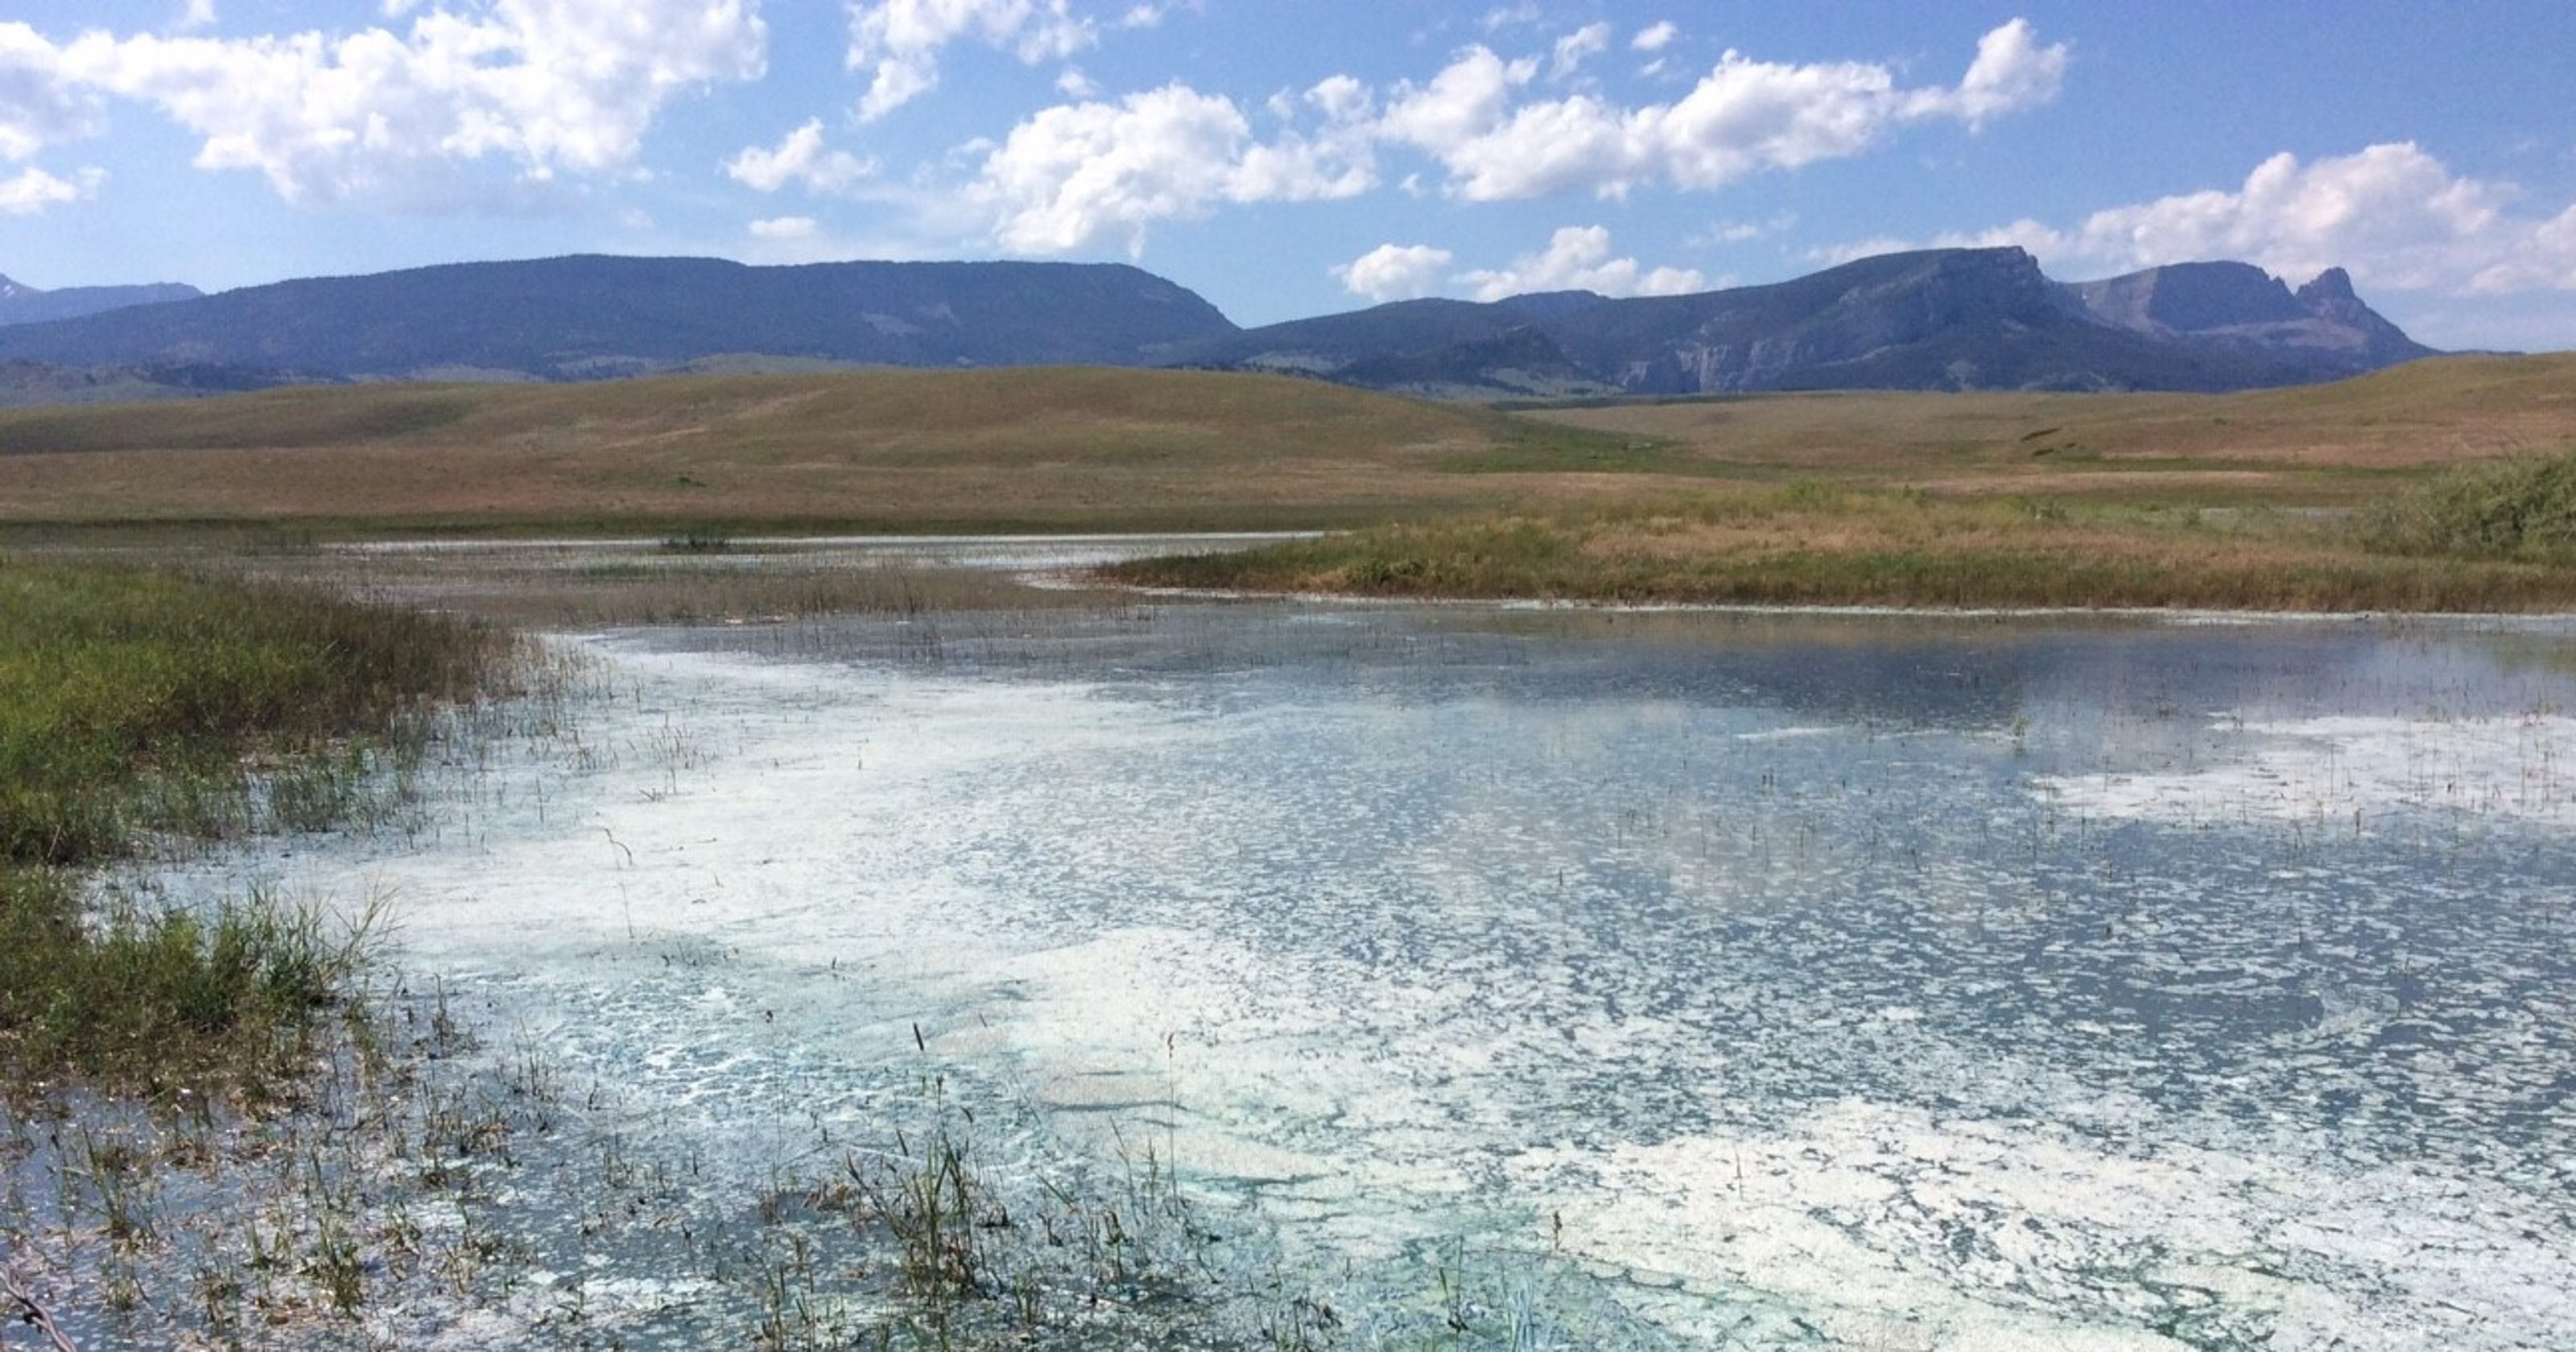 Montana waters threatened by toxic algae blooms